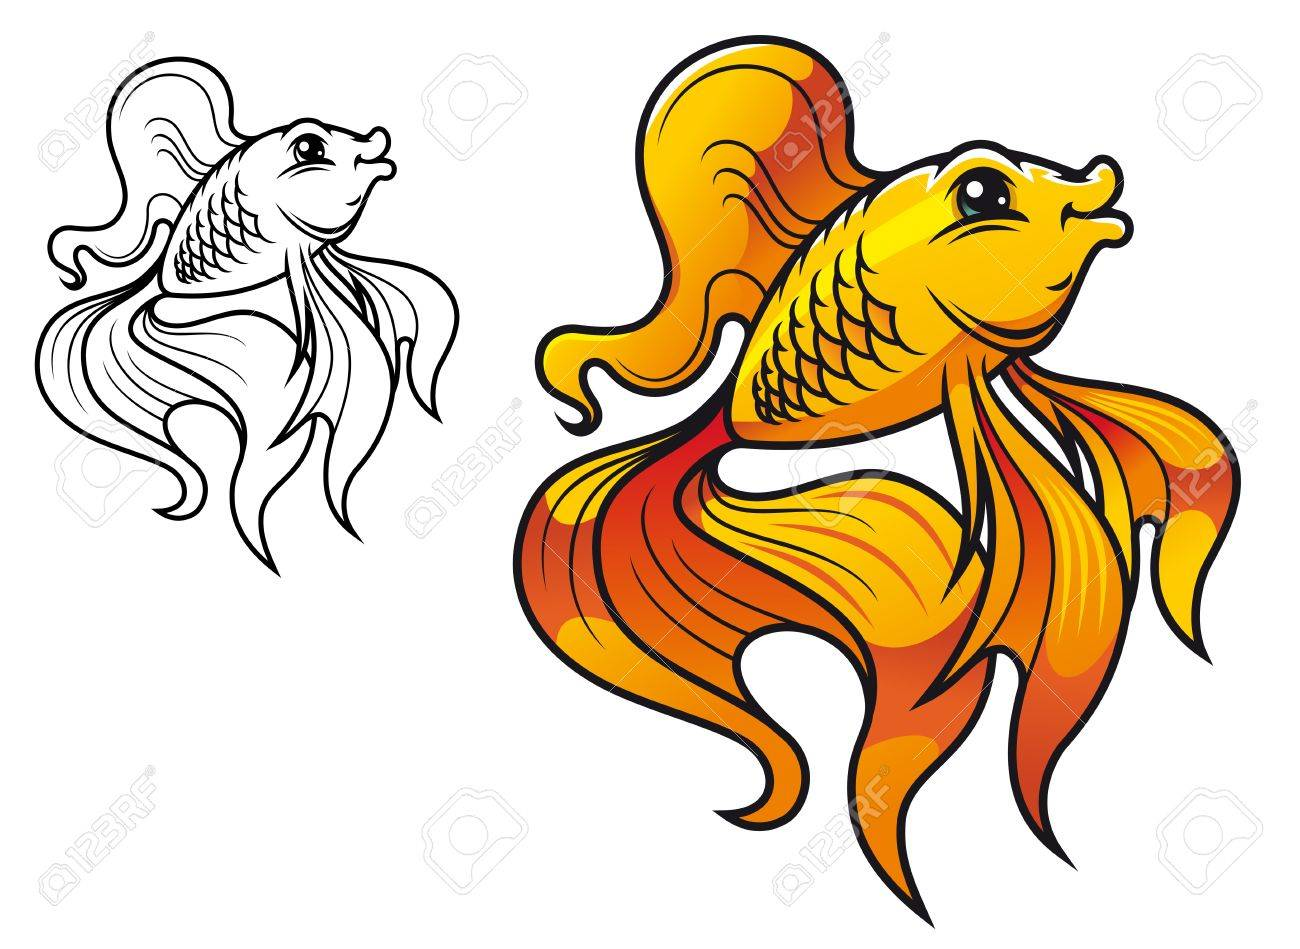 Colorful smiling golden fish in cartoon style isolated on white background Stock Vector - 12778511